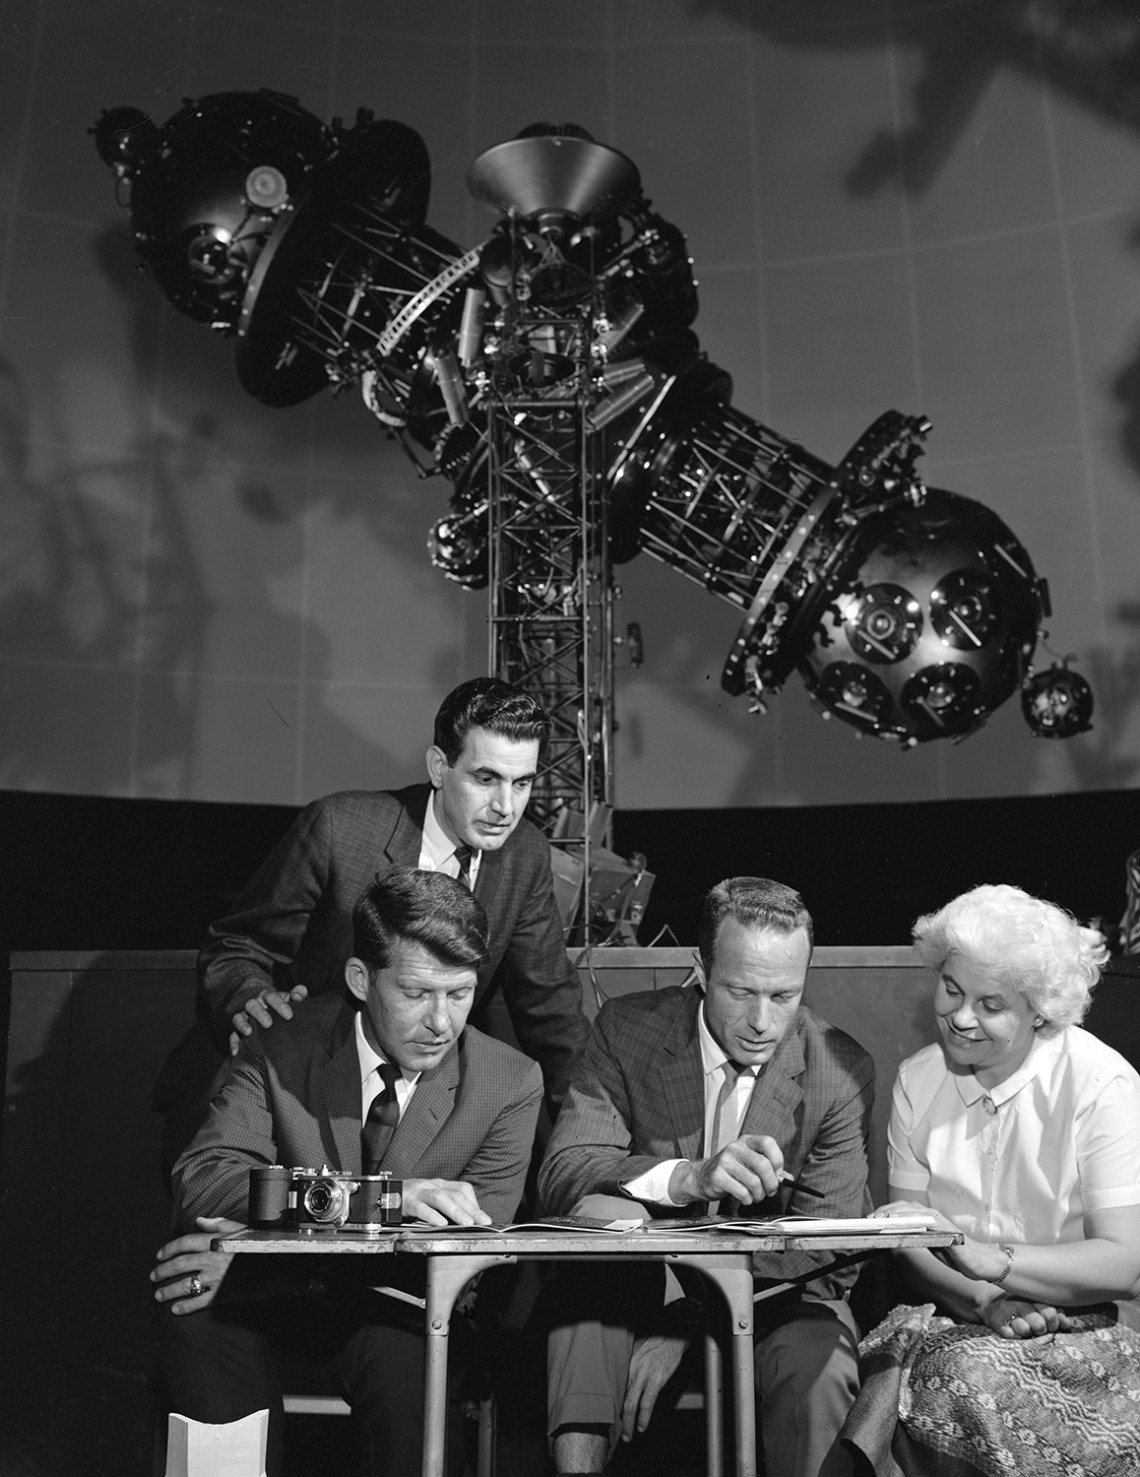 Wally Schirra and Scott Carpenter (sitting) get some help while studying star charts at Morehead Planetarium. Credit: NASA via Retro Space Images.